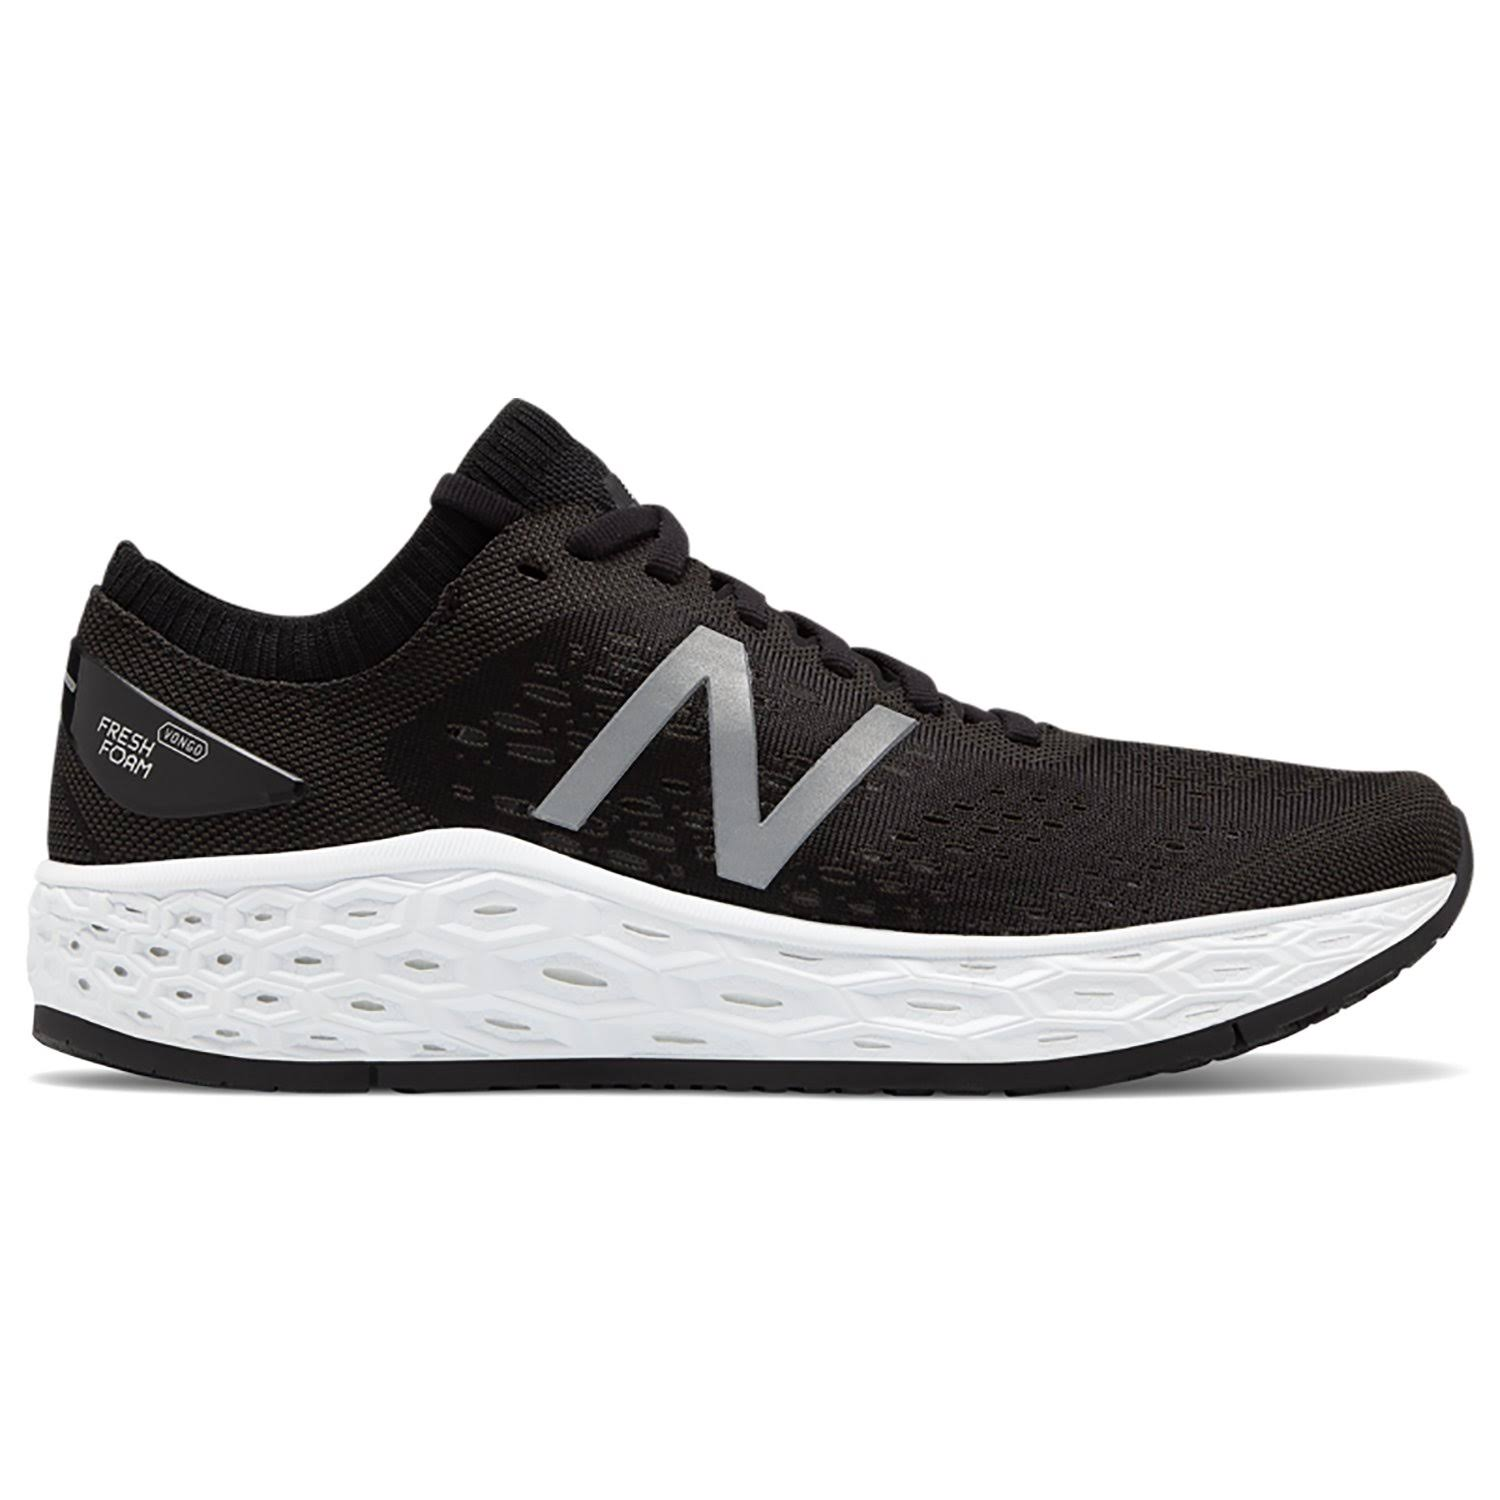 New Balance Fresh Foam Vongo v4 10 Women's Black